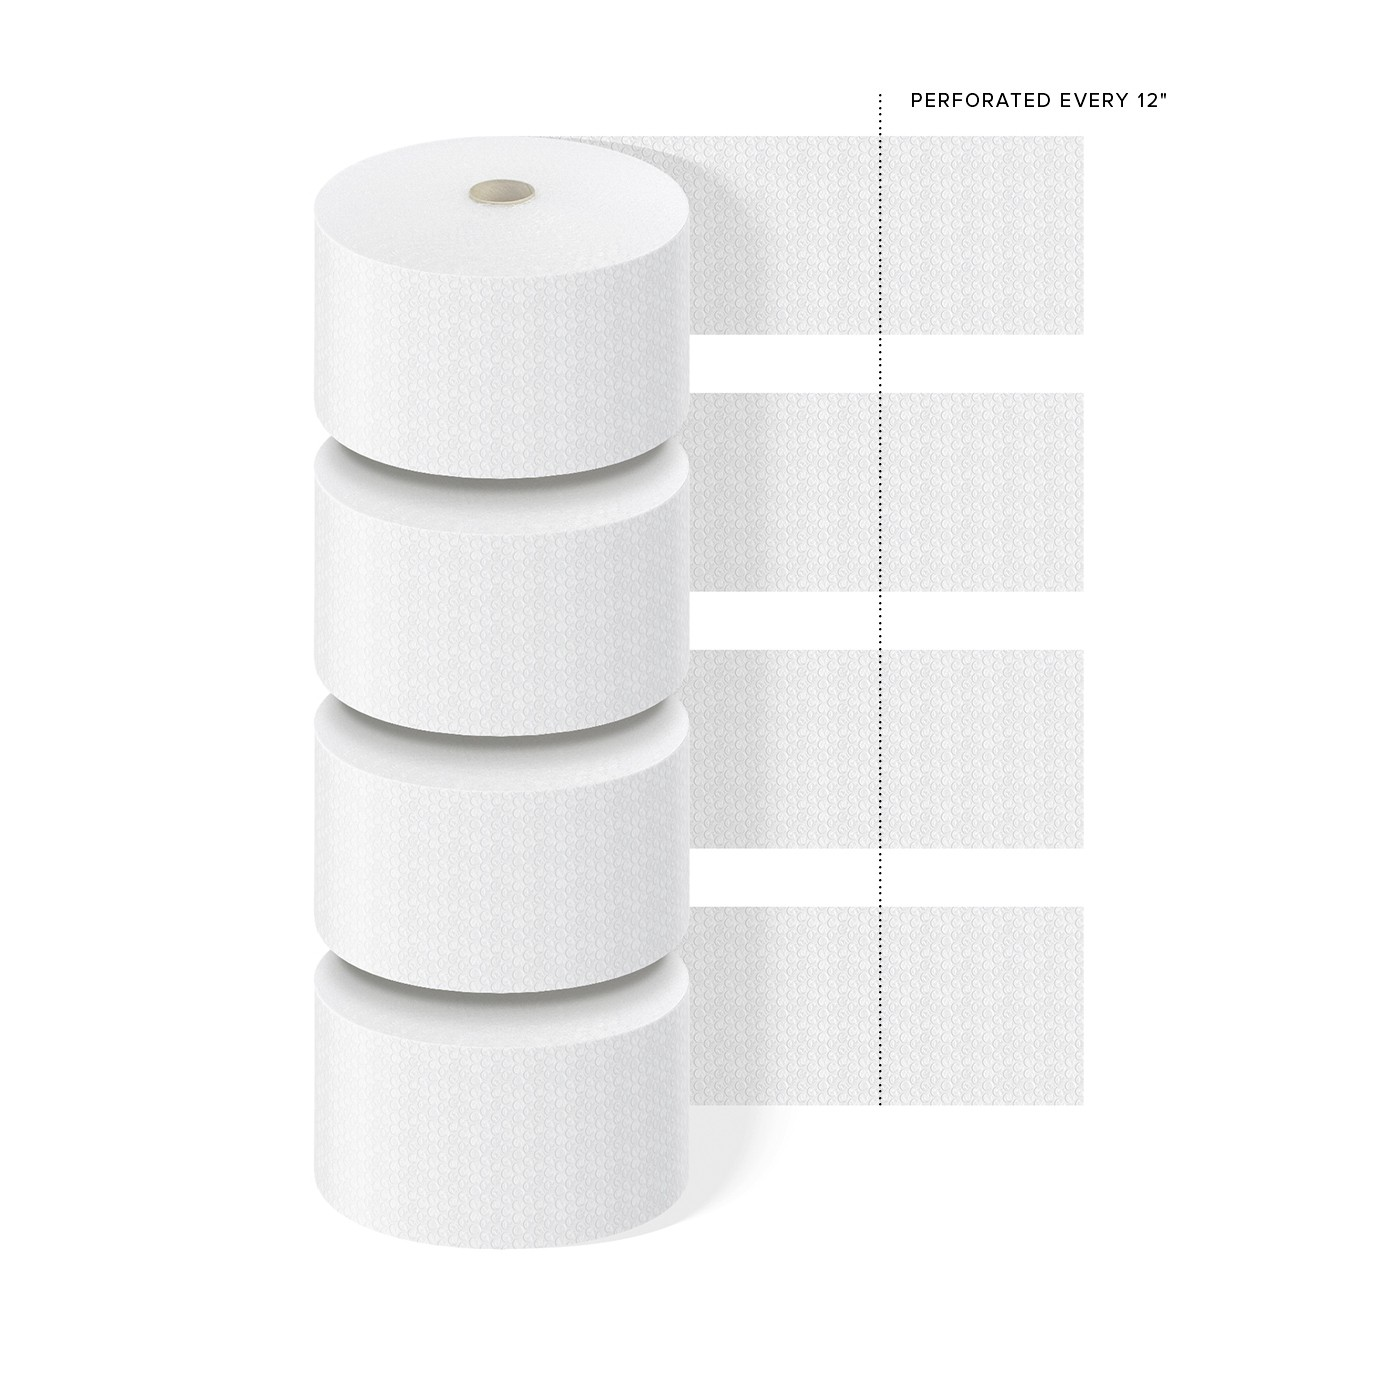 """TOTALPACK® 5/16"""" x 12"""" x 188' Perforated Every 12"""", Air Bubble 4 Rolls"""